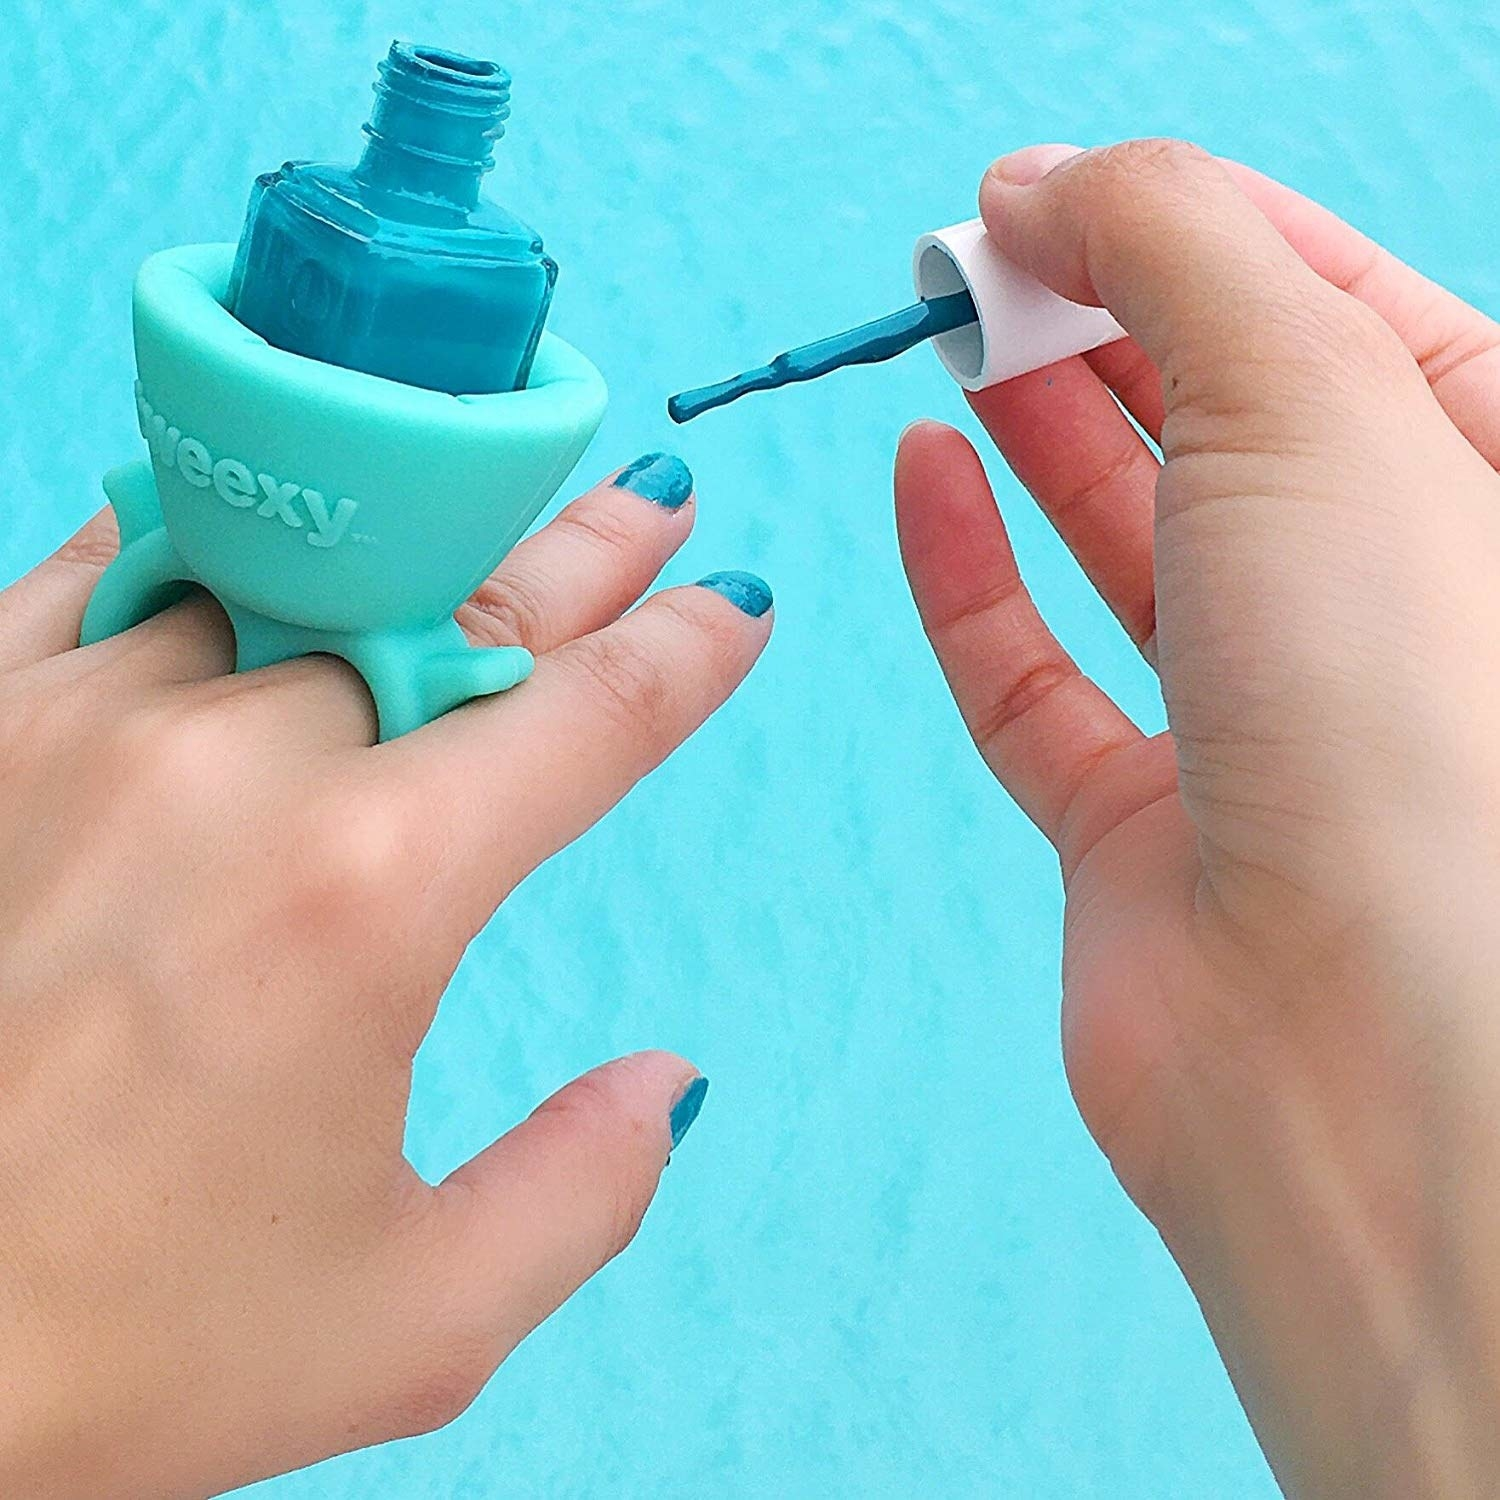 Model's hands with the Tweexy on the left hand. It has two rings and a holder on top with a bottle of nail polish in it to keep it steady. The right hand is holding the nail polish brush and painting the left hand's nails